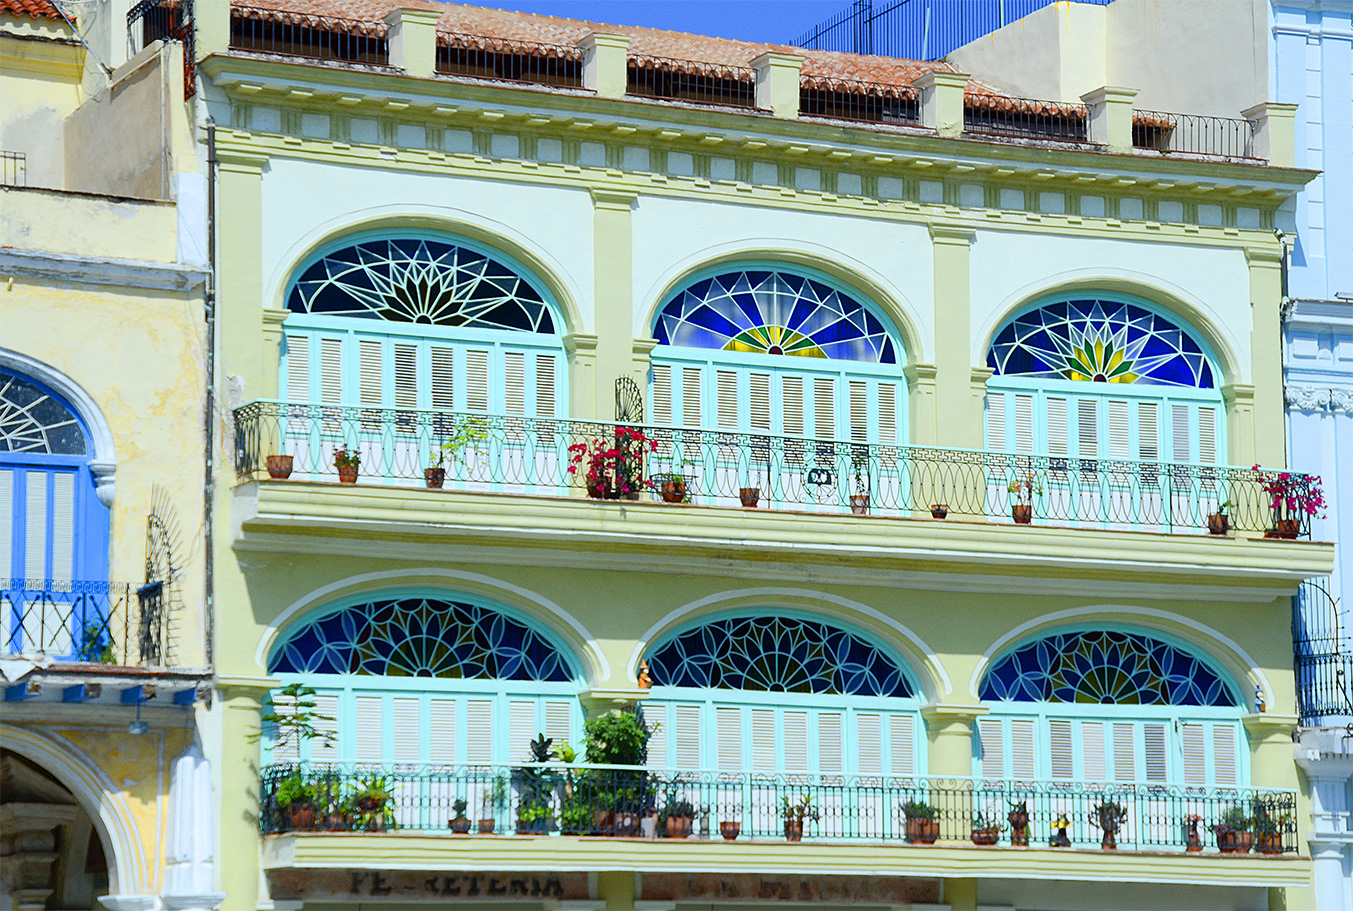 Historic architecture of Cuba is preserved in Old Havana historic colorful building seen on people-to-people cultural tour